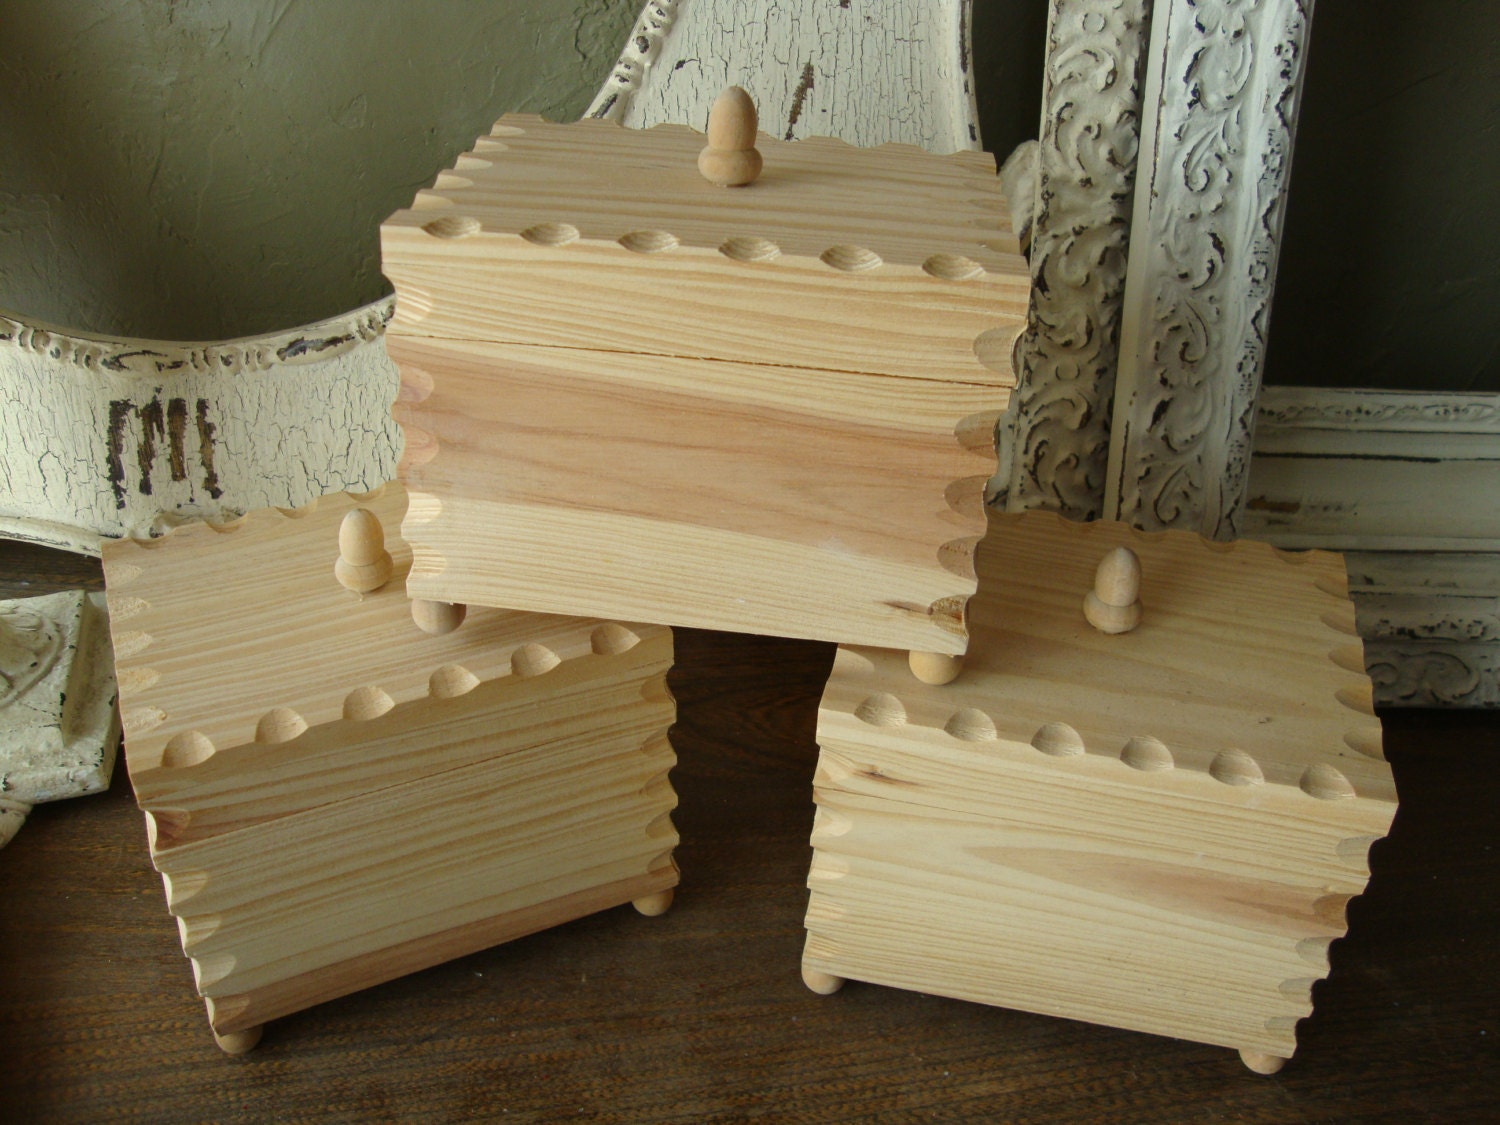 Unfinished Wood Boxes with Lids